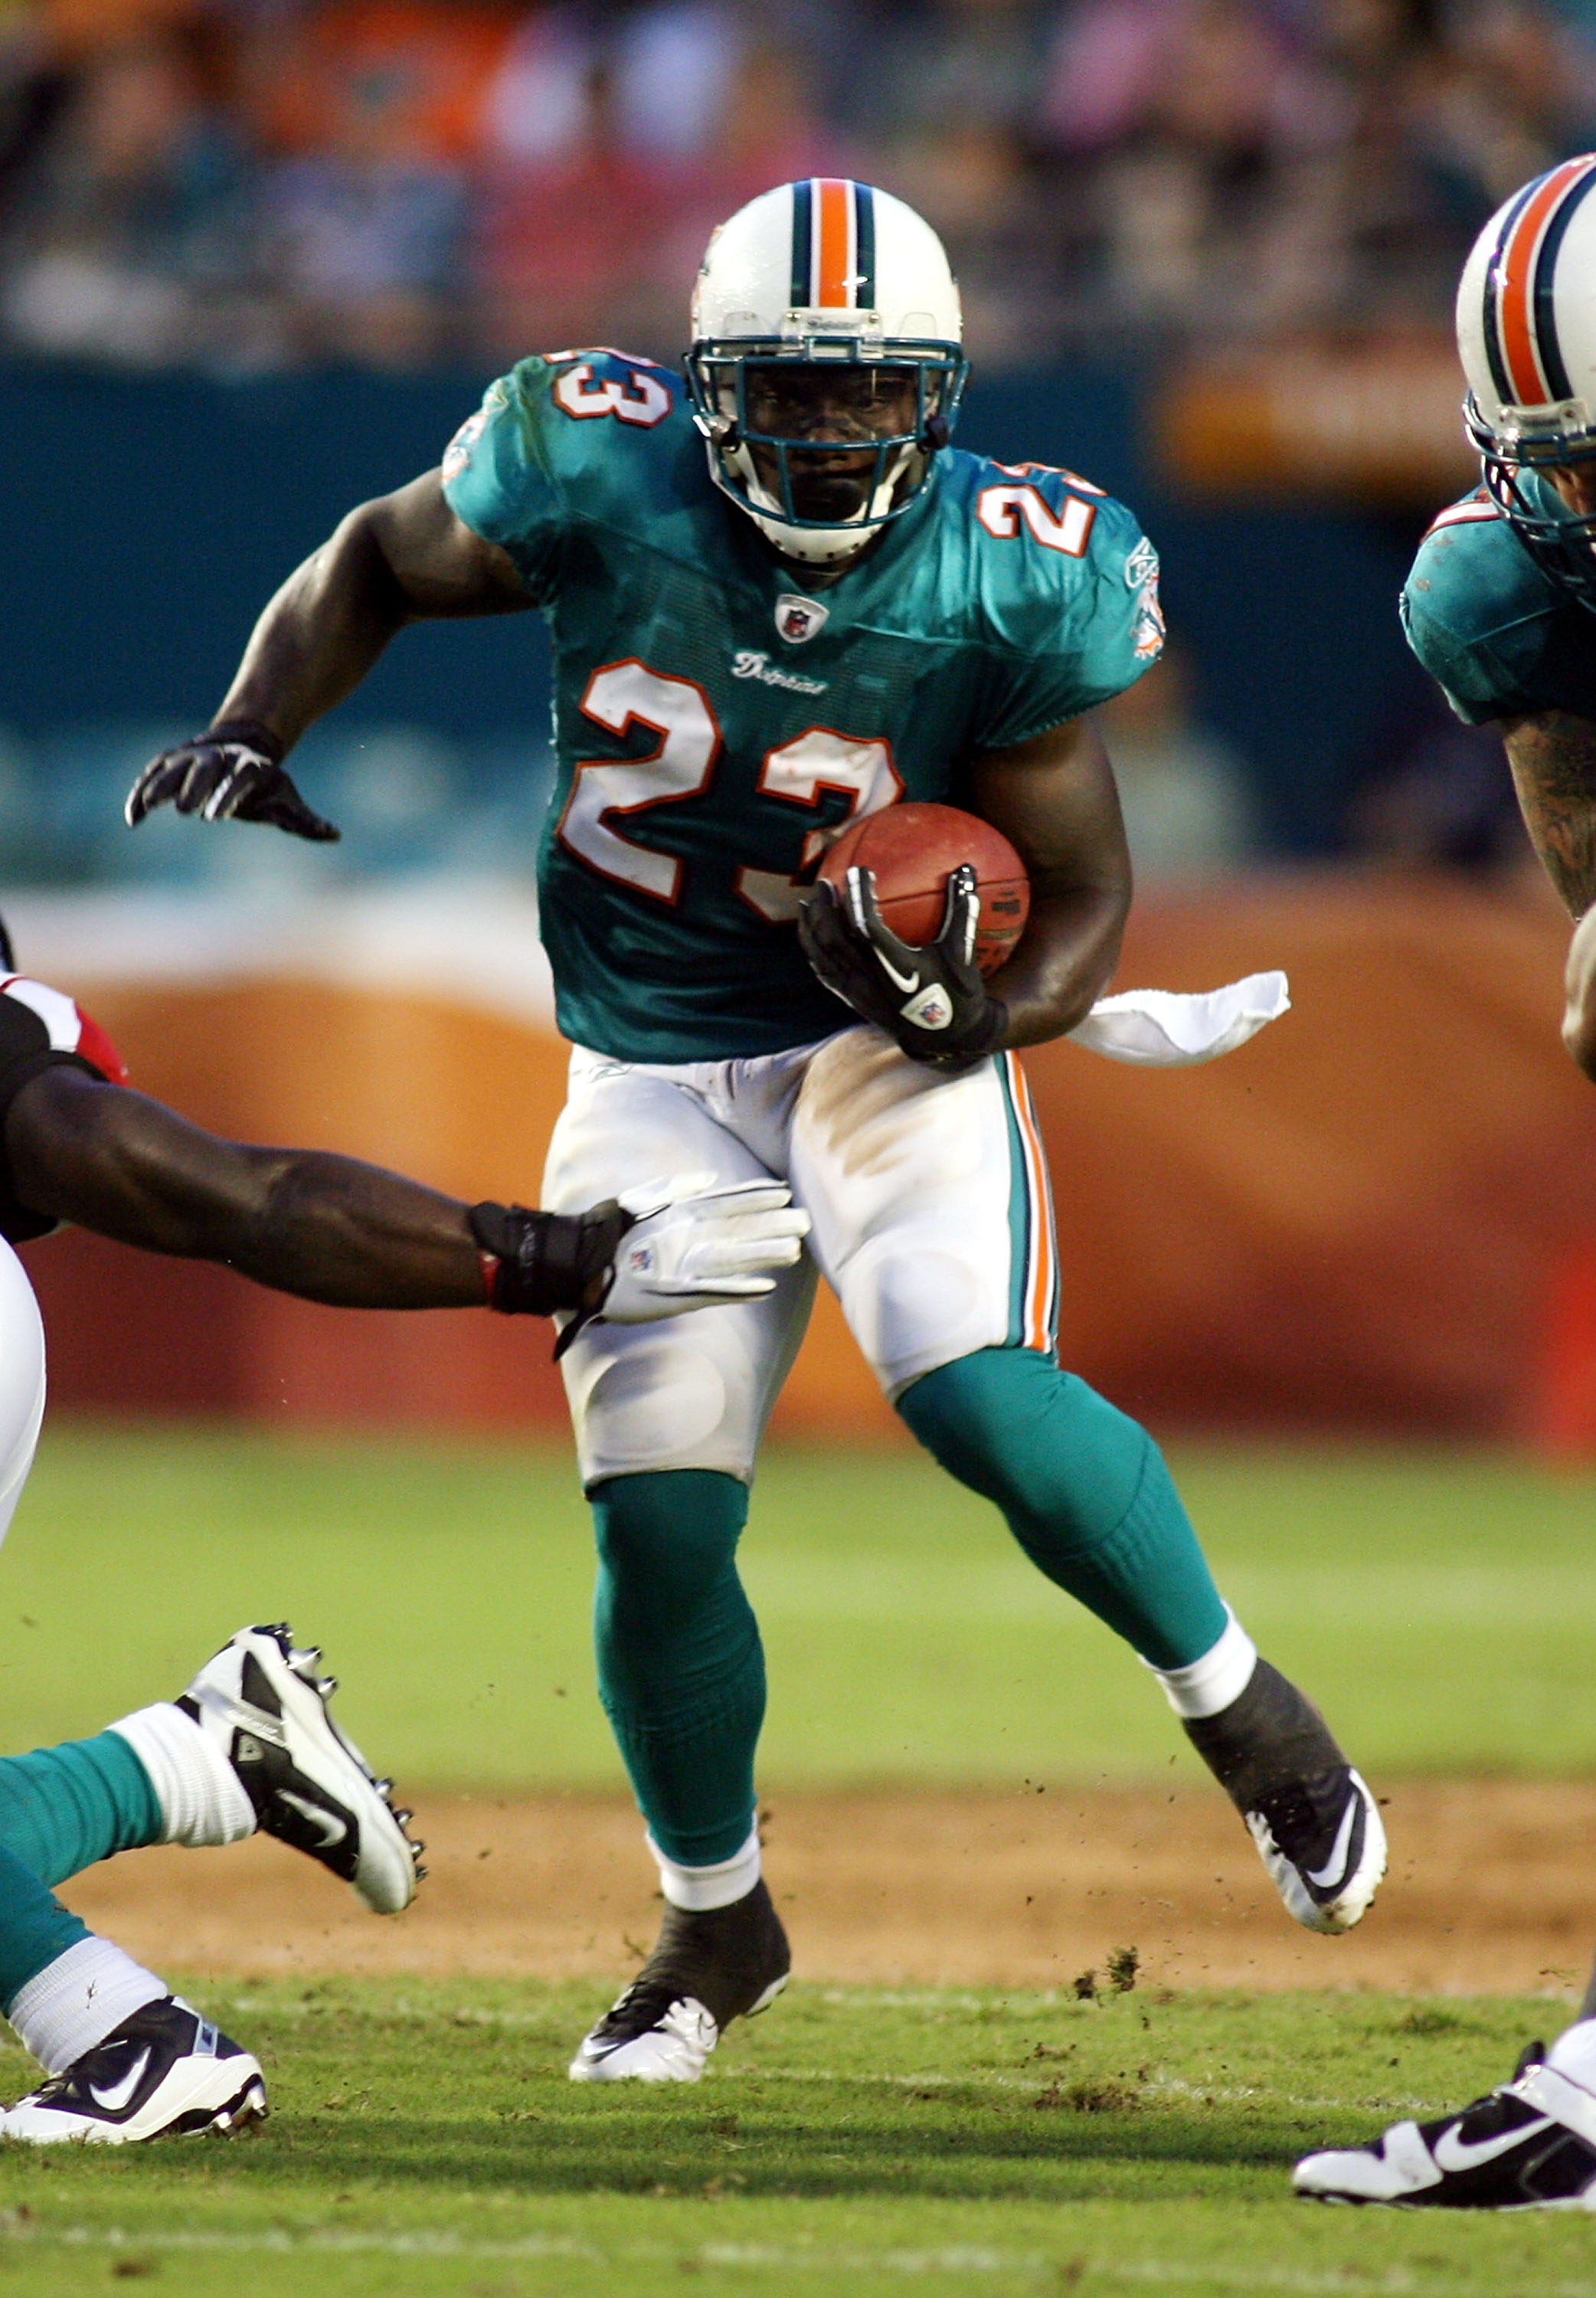 MIAMI - AUGUST 27:  Running back Ronnie Brown #23 of the Miami Dolphins rushes against the Atlanta Falcons during pre season action at Sun Life Stadium on August 27, 2010 in Miami, Florida.  (Photo by Marc Serota/Getty Images)